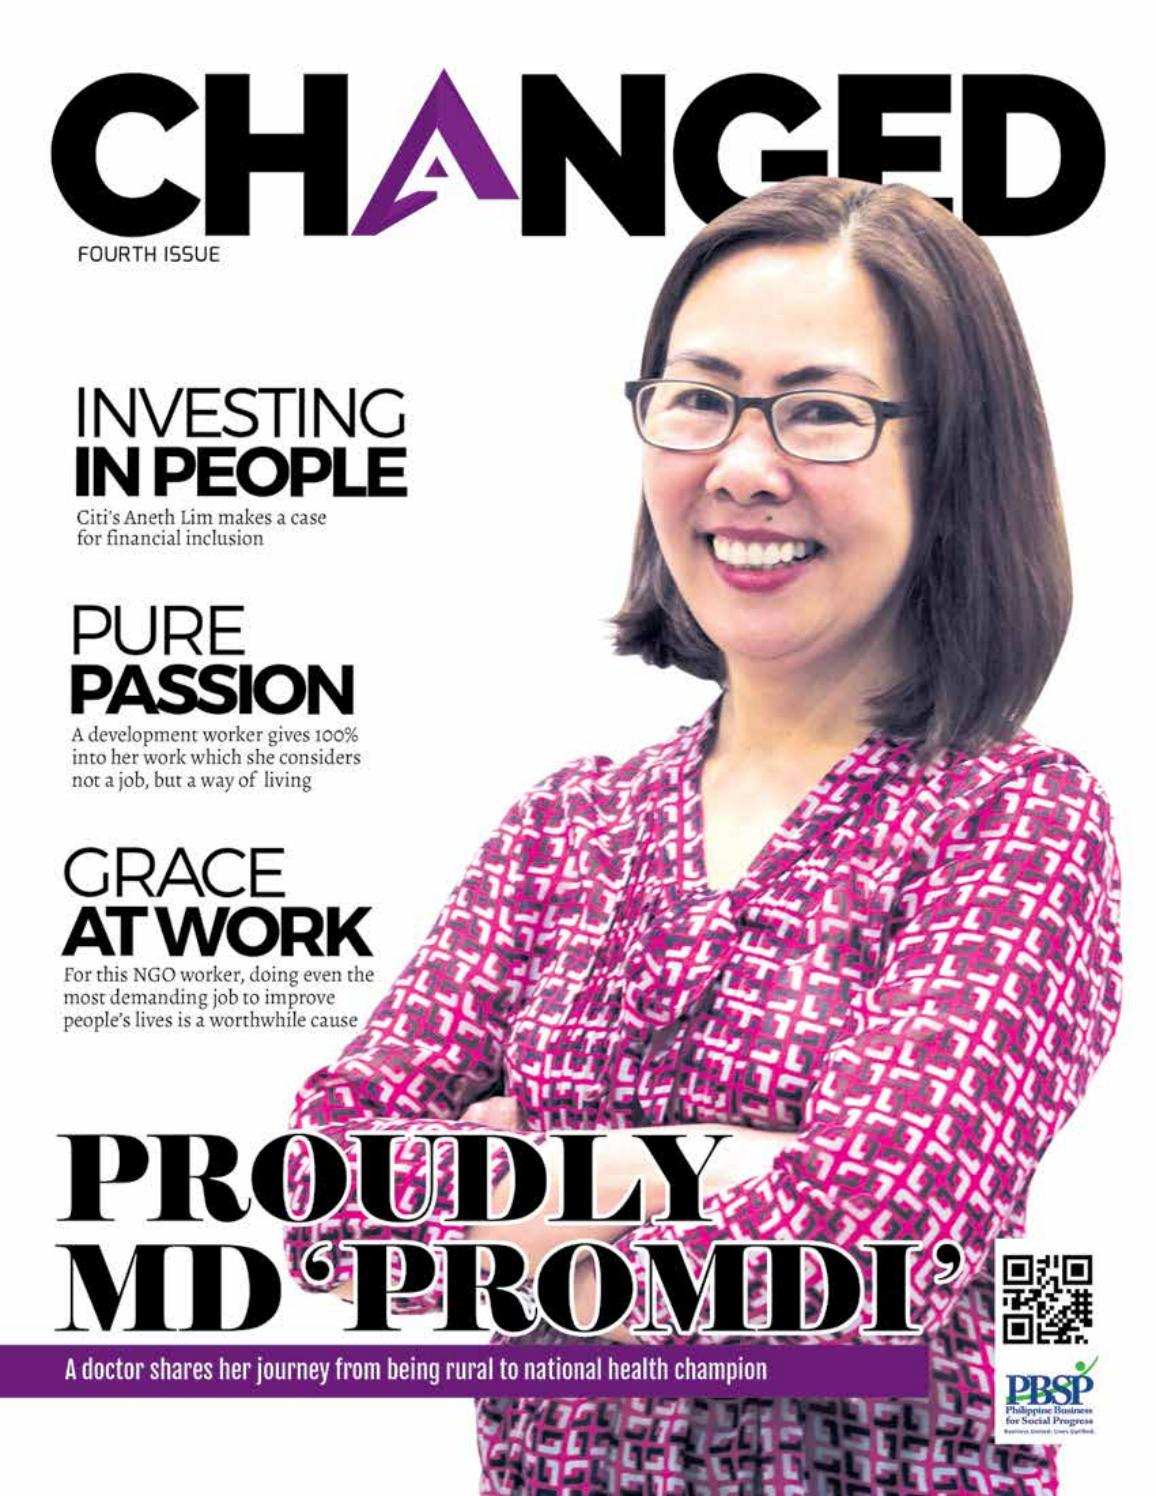 Changed mag 4th issue by Marilyn Mirando - issuu